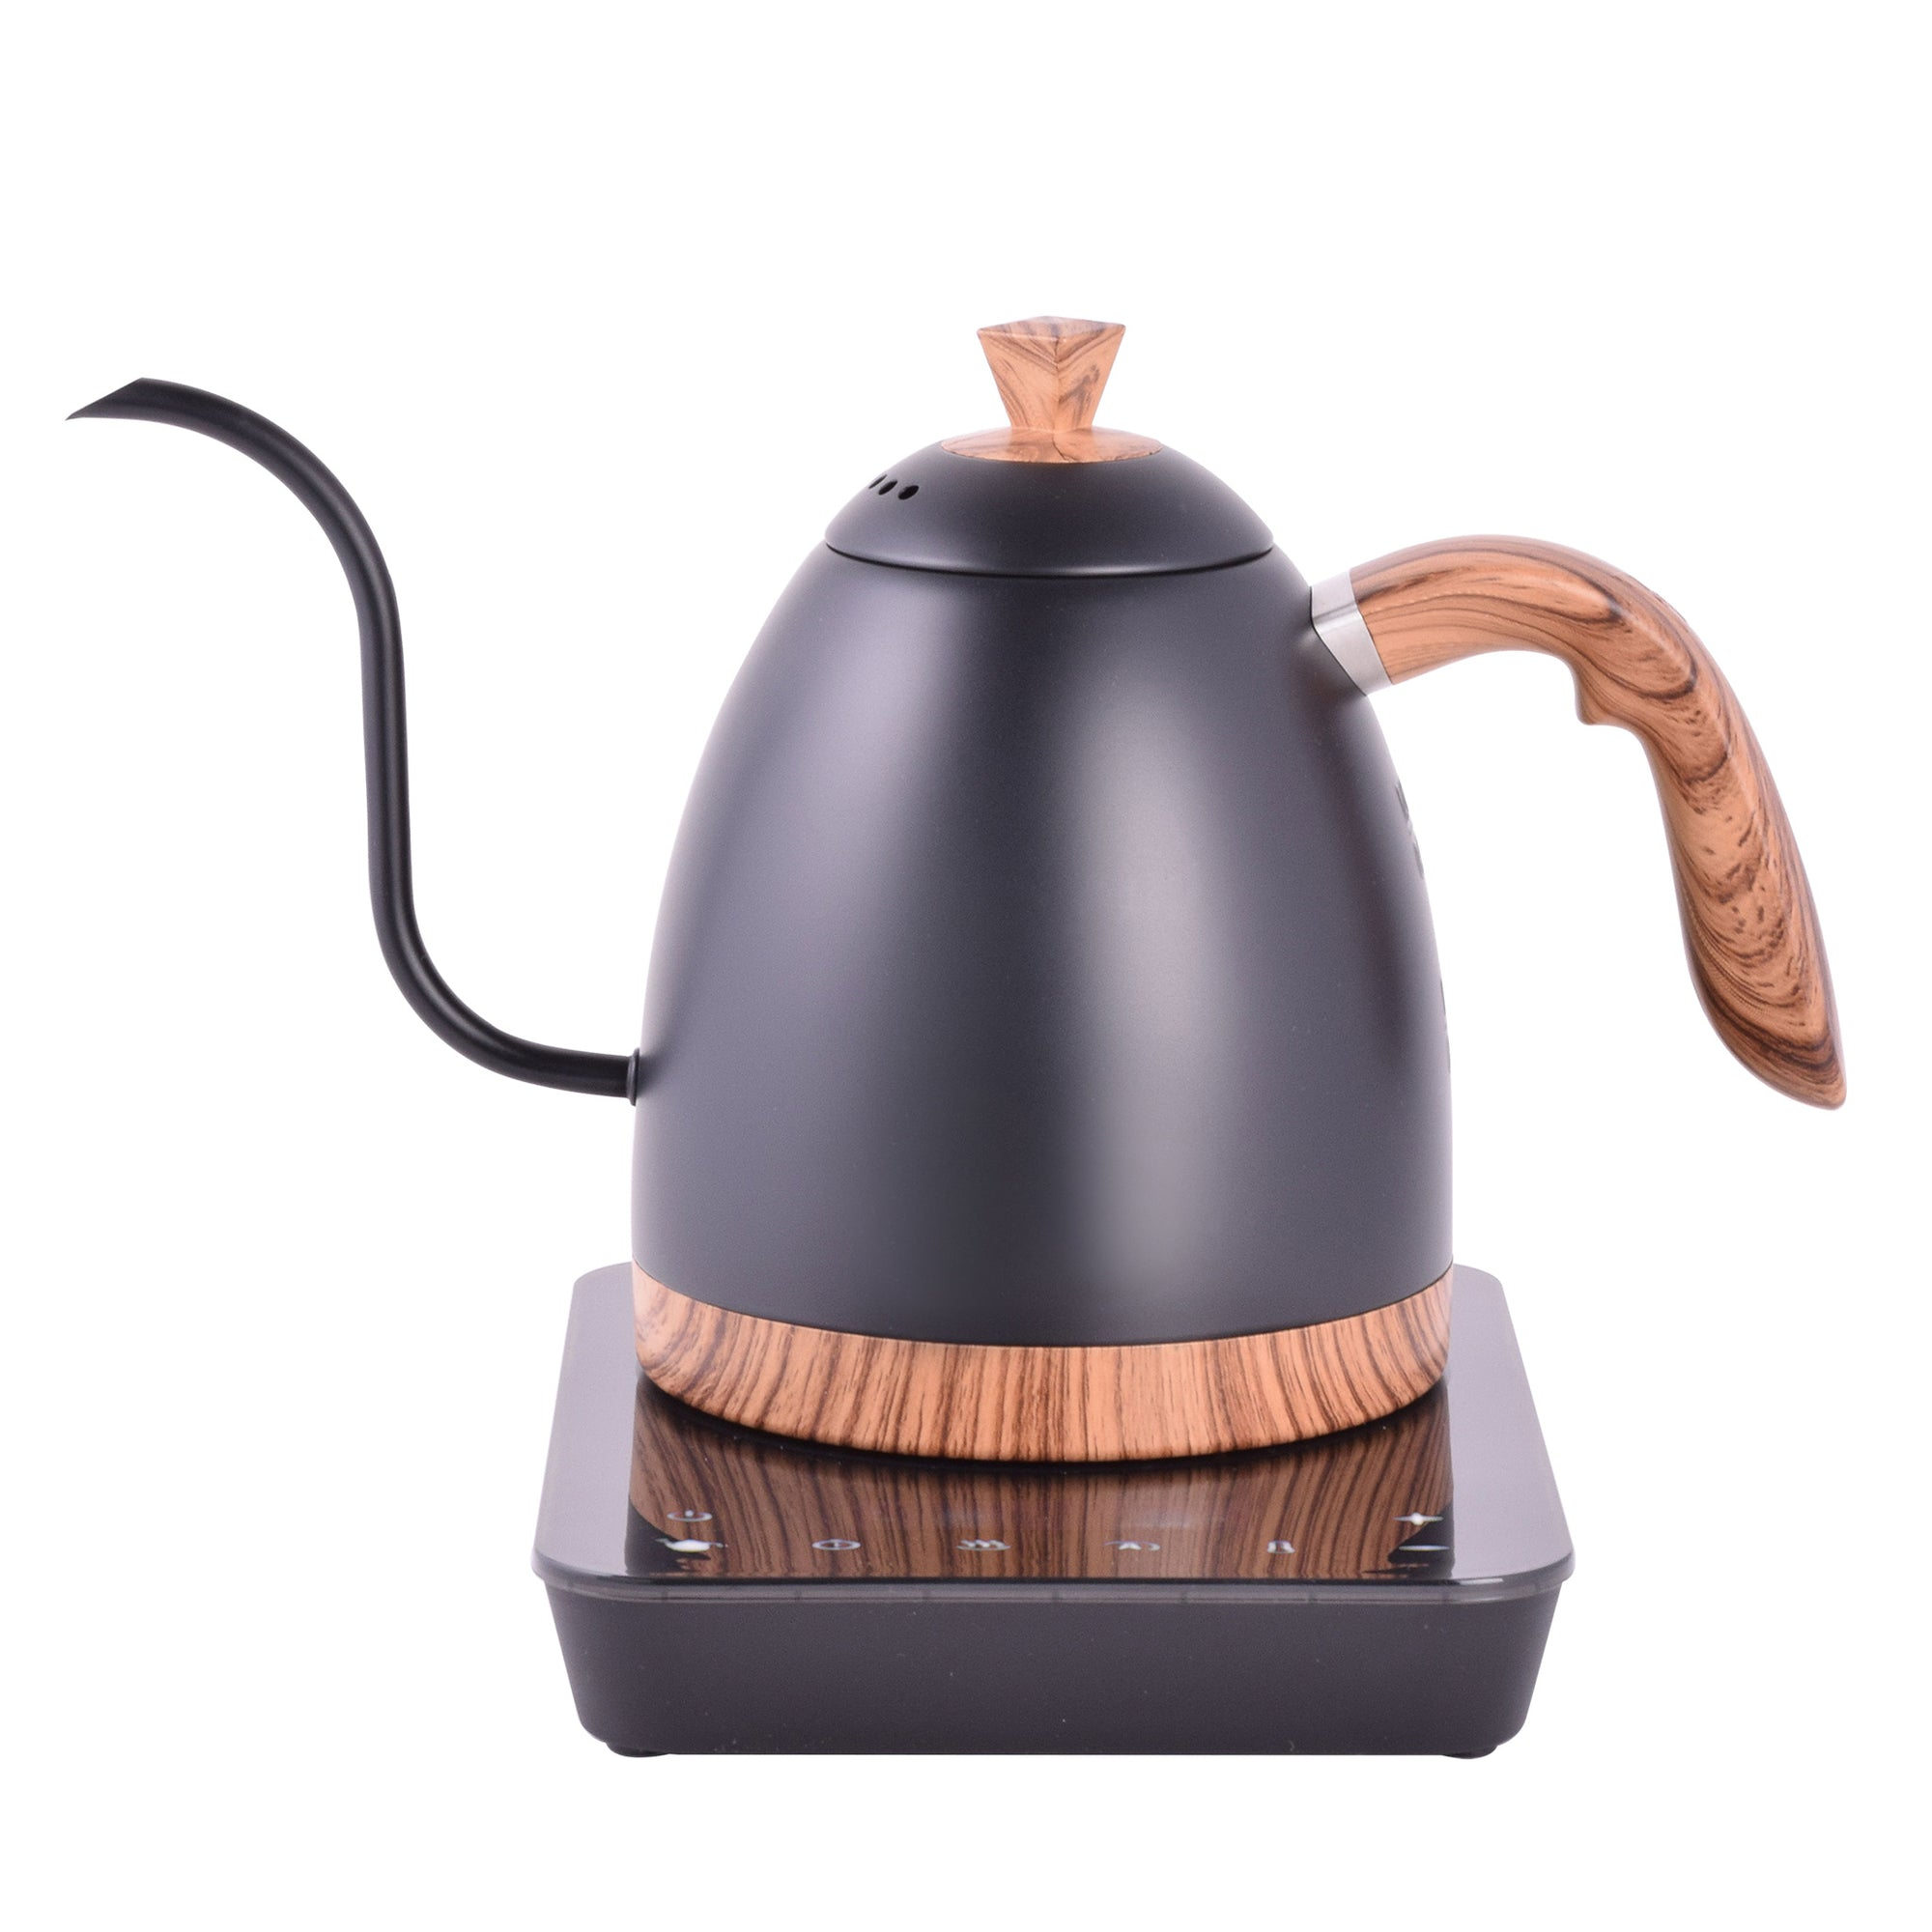 Brewista Artisan Kettle 0.9L - Matt Black - Espresso Gear